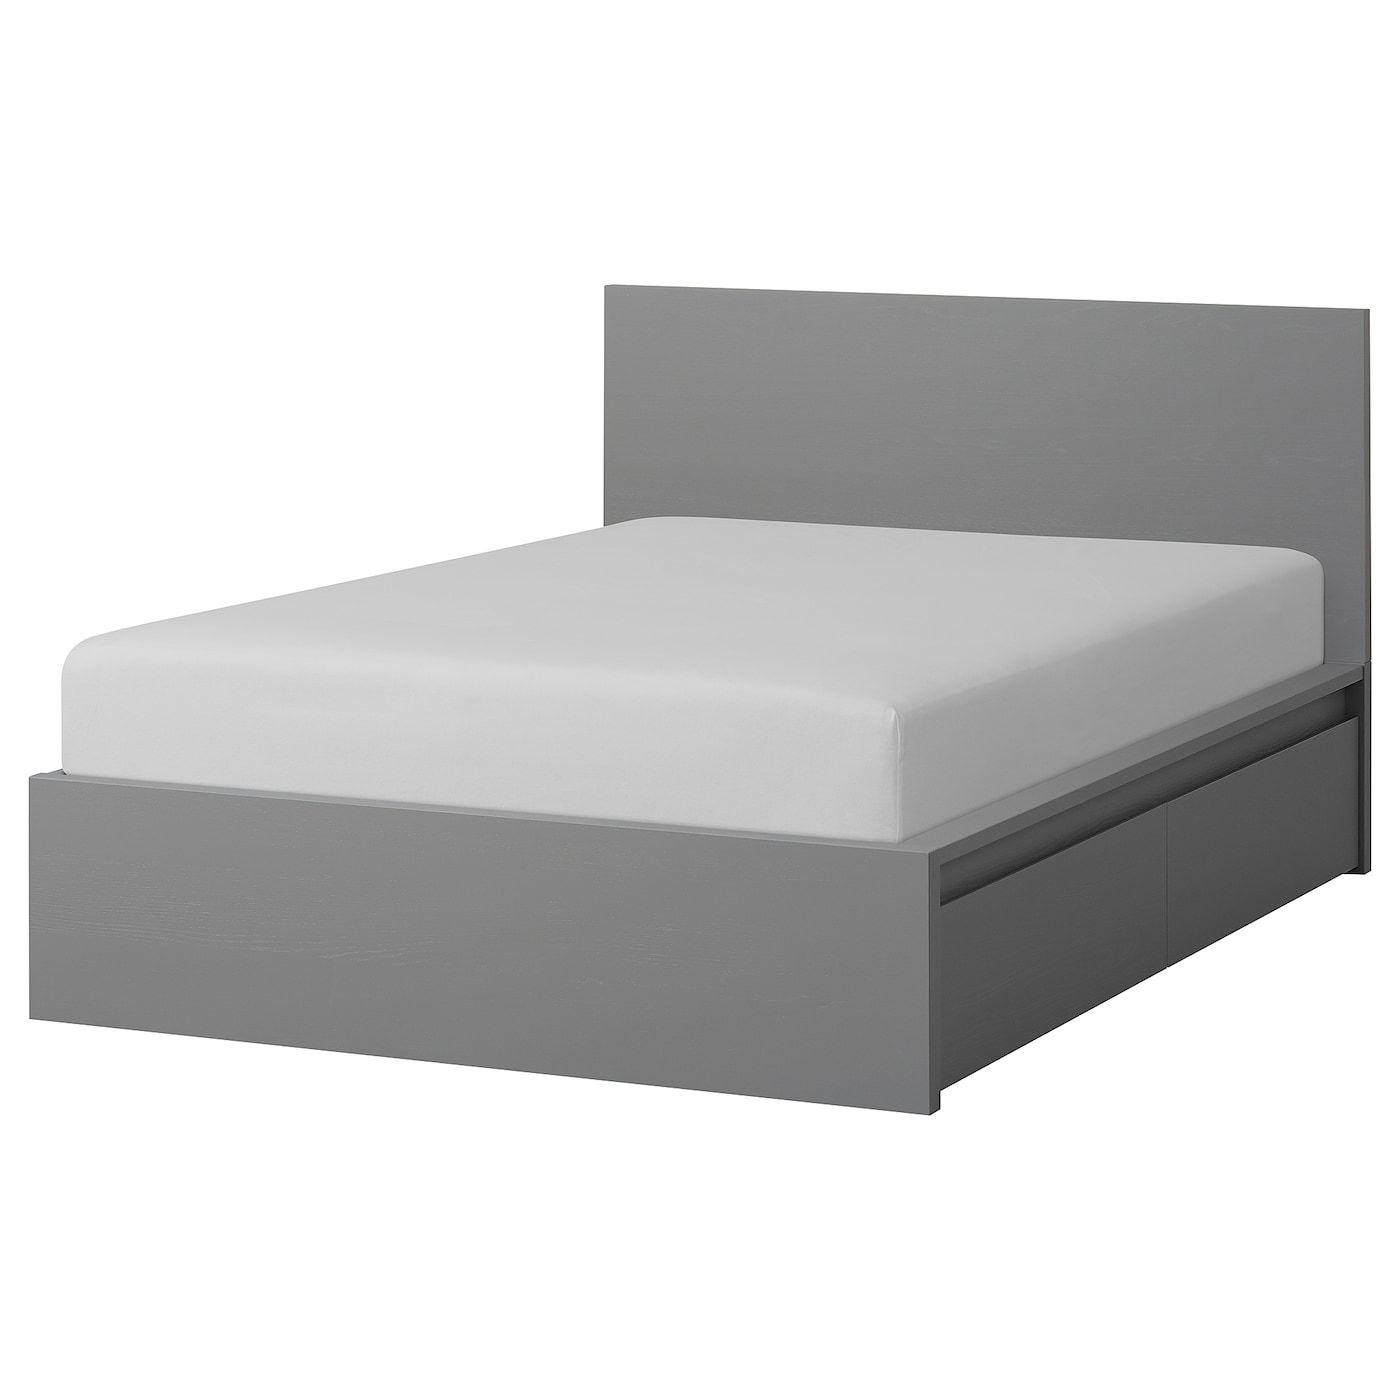 Ikea Malm High Bed Frame 2 Storage Boxes Gray Stained Lonset